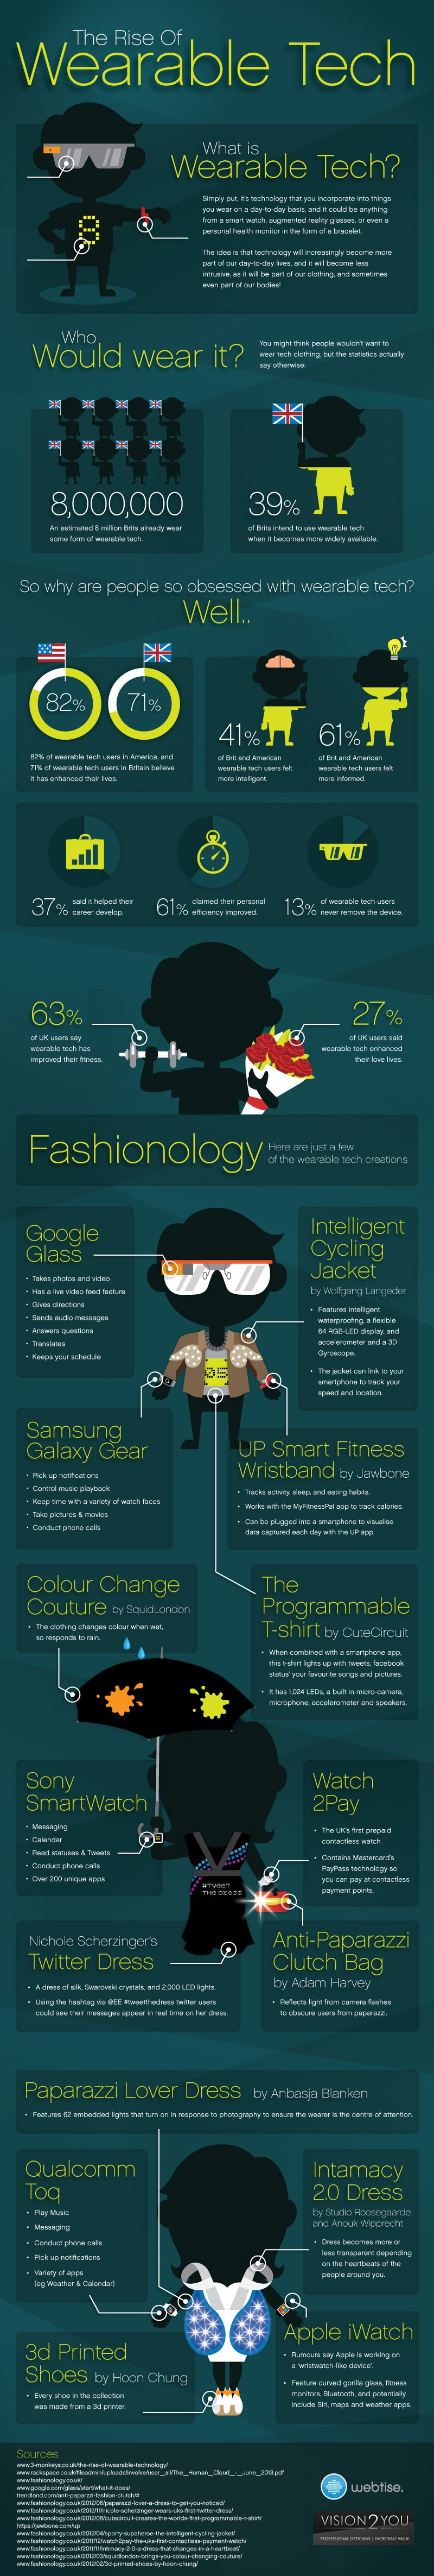 The-Growth-Of-Wearable-Technology  #infographic